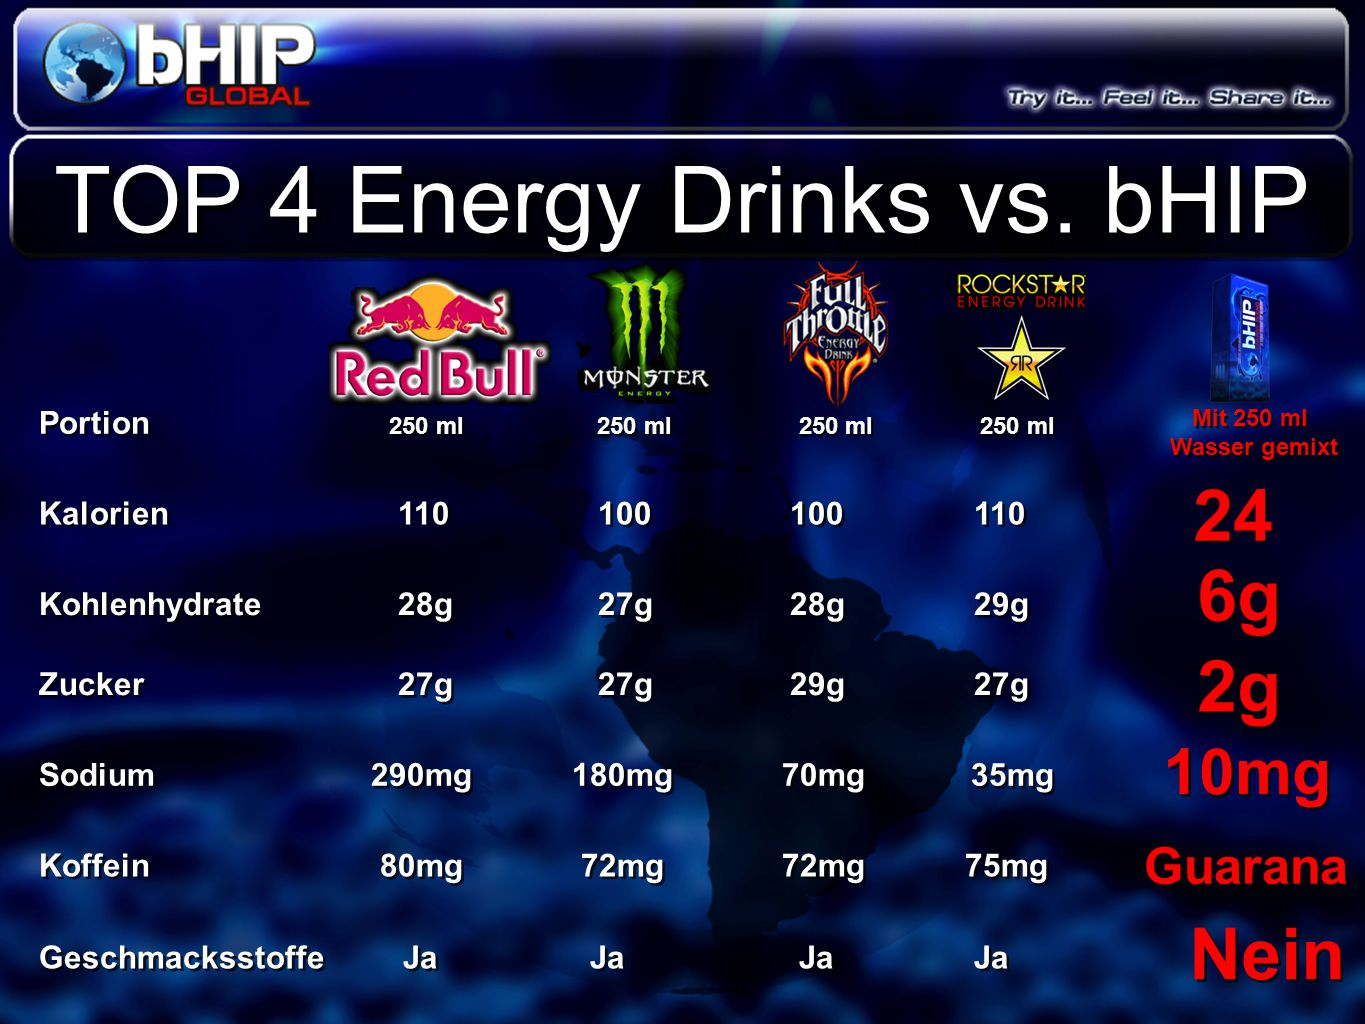 TOP 4 Energy Drinks vs. bHIP